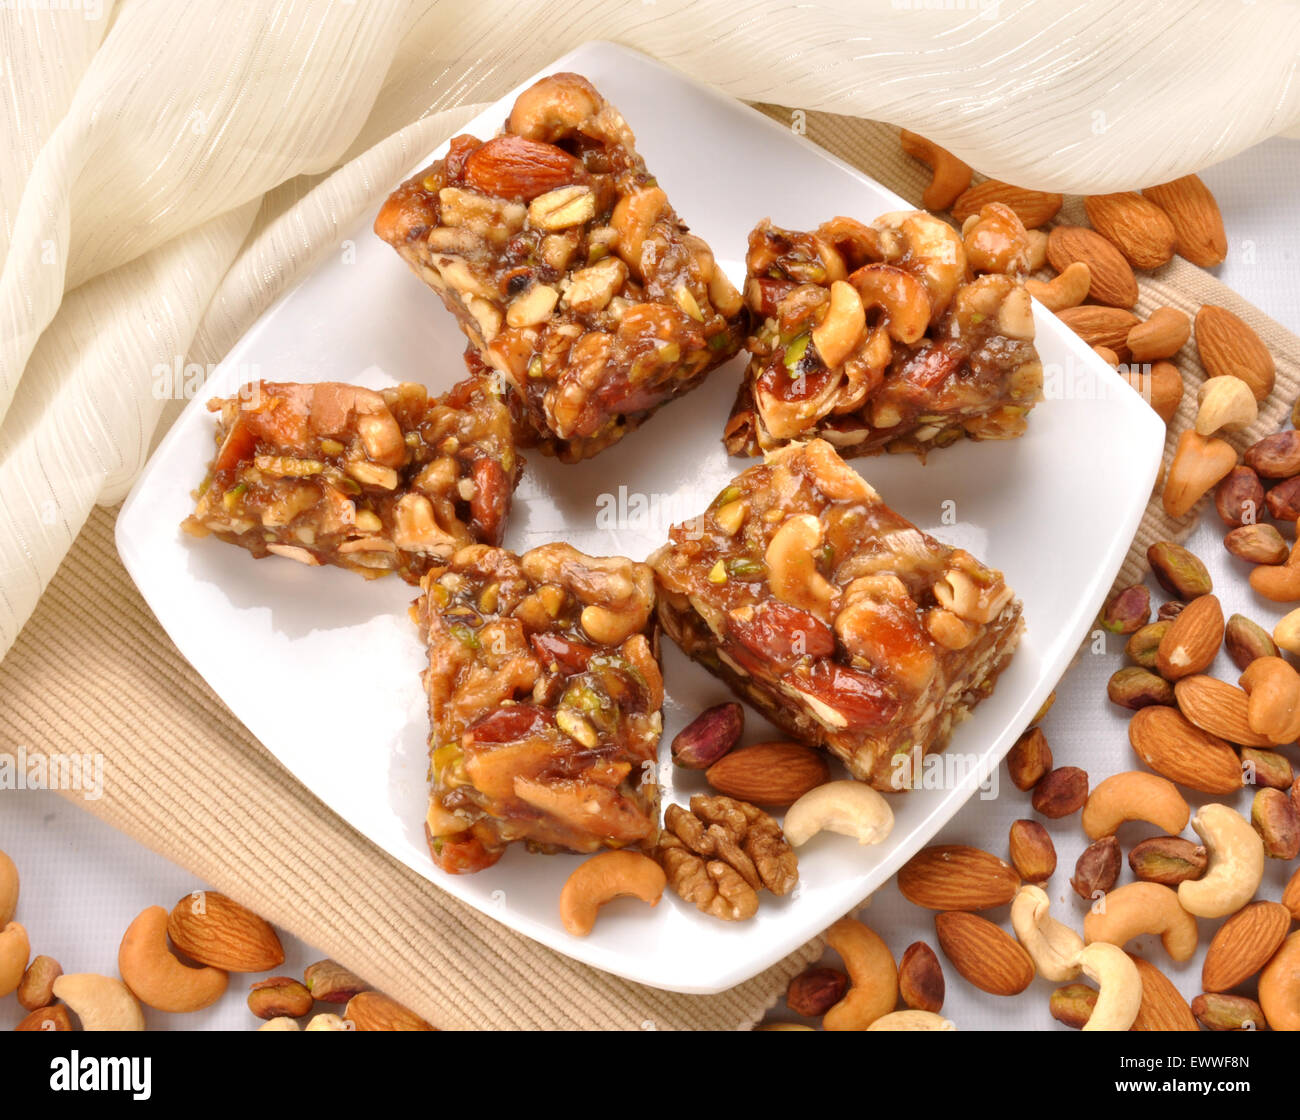 Dry Fruit Halva with Nuts Top View - Stock Image